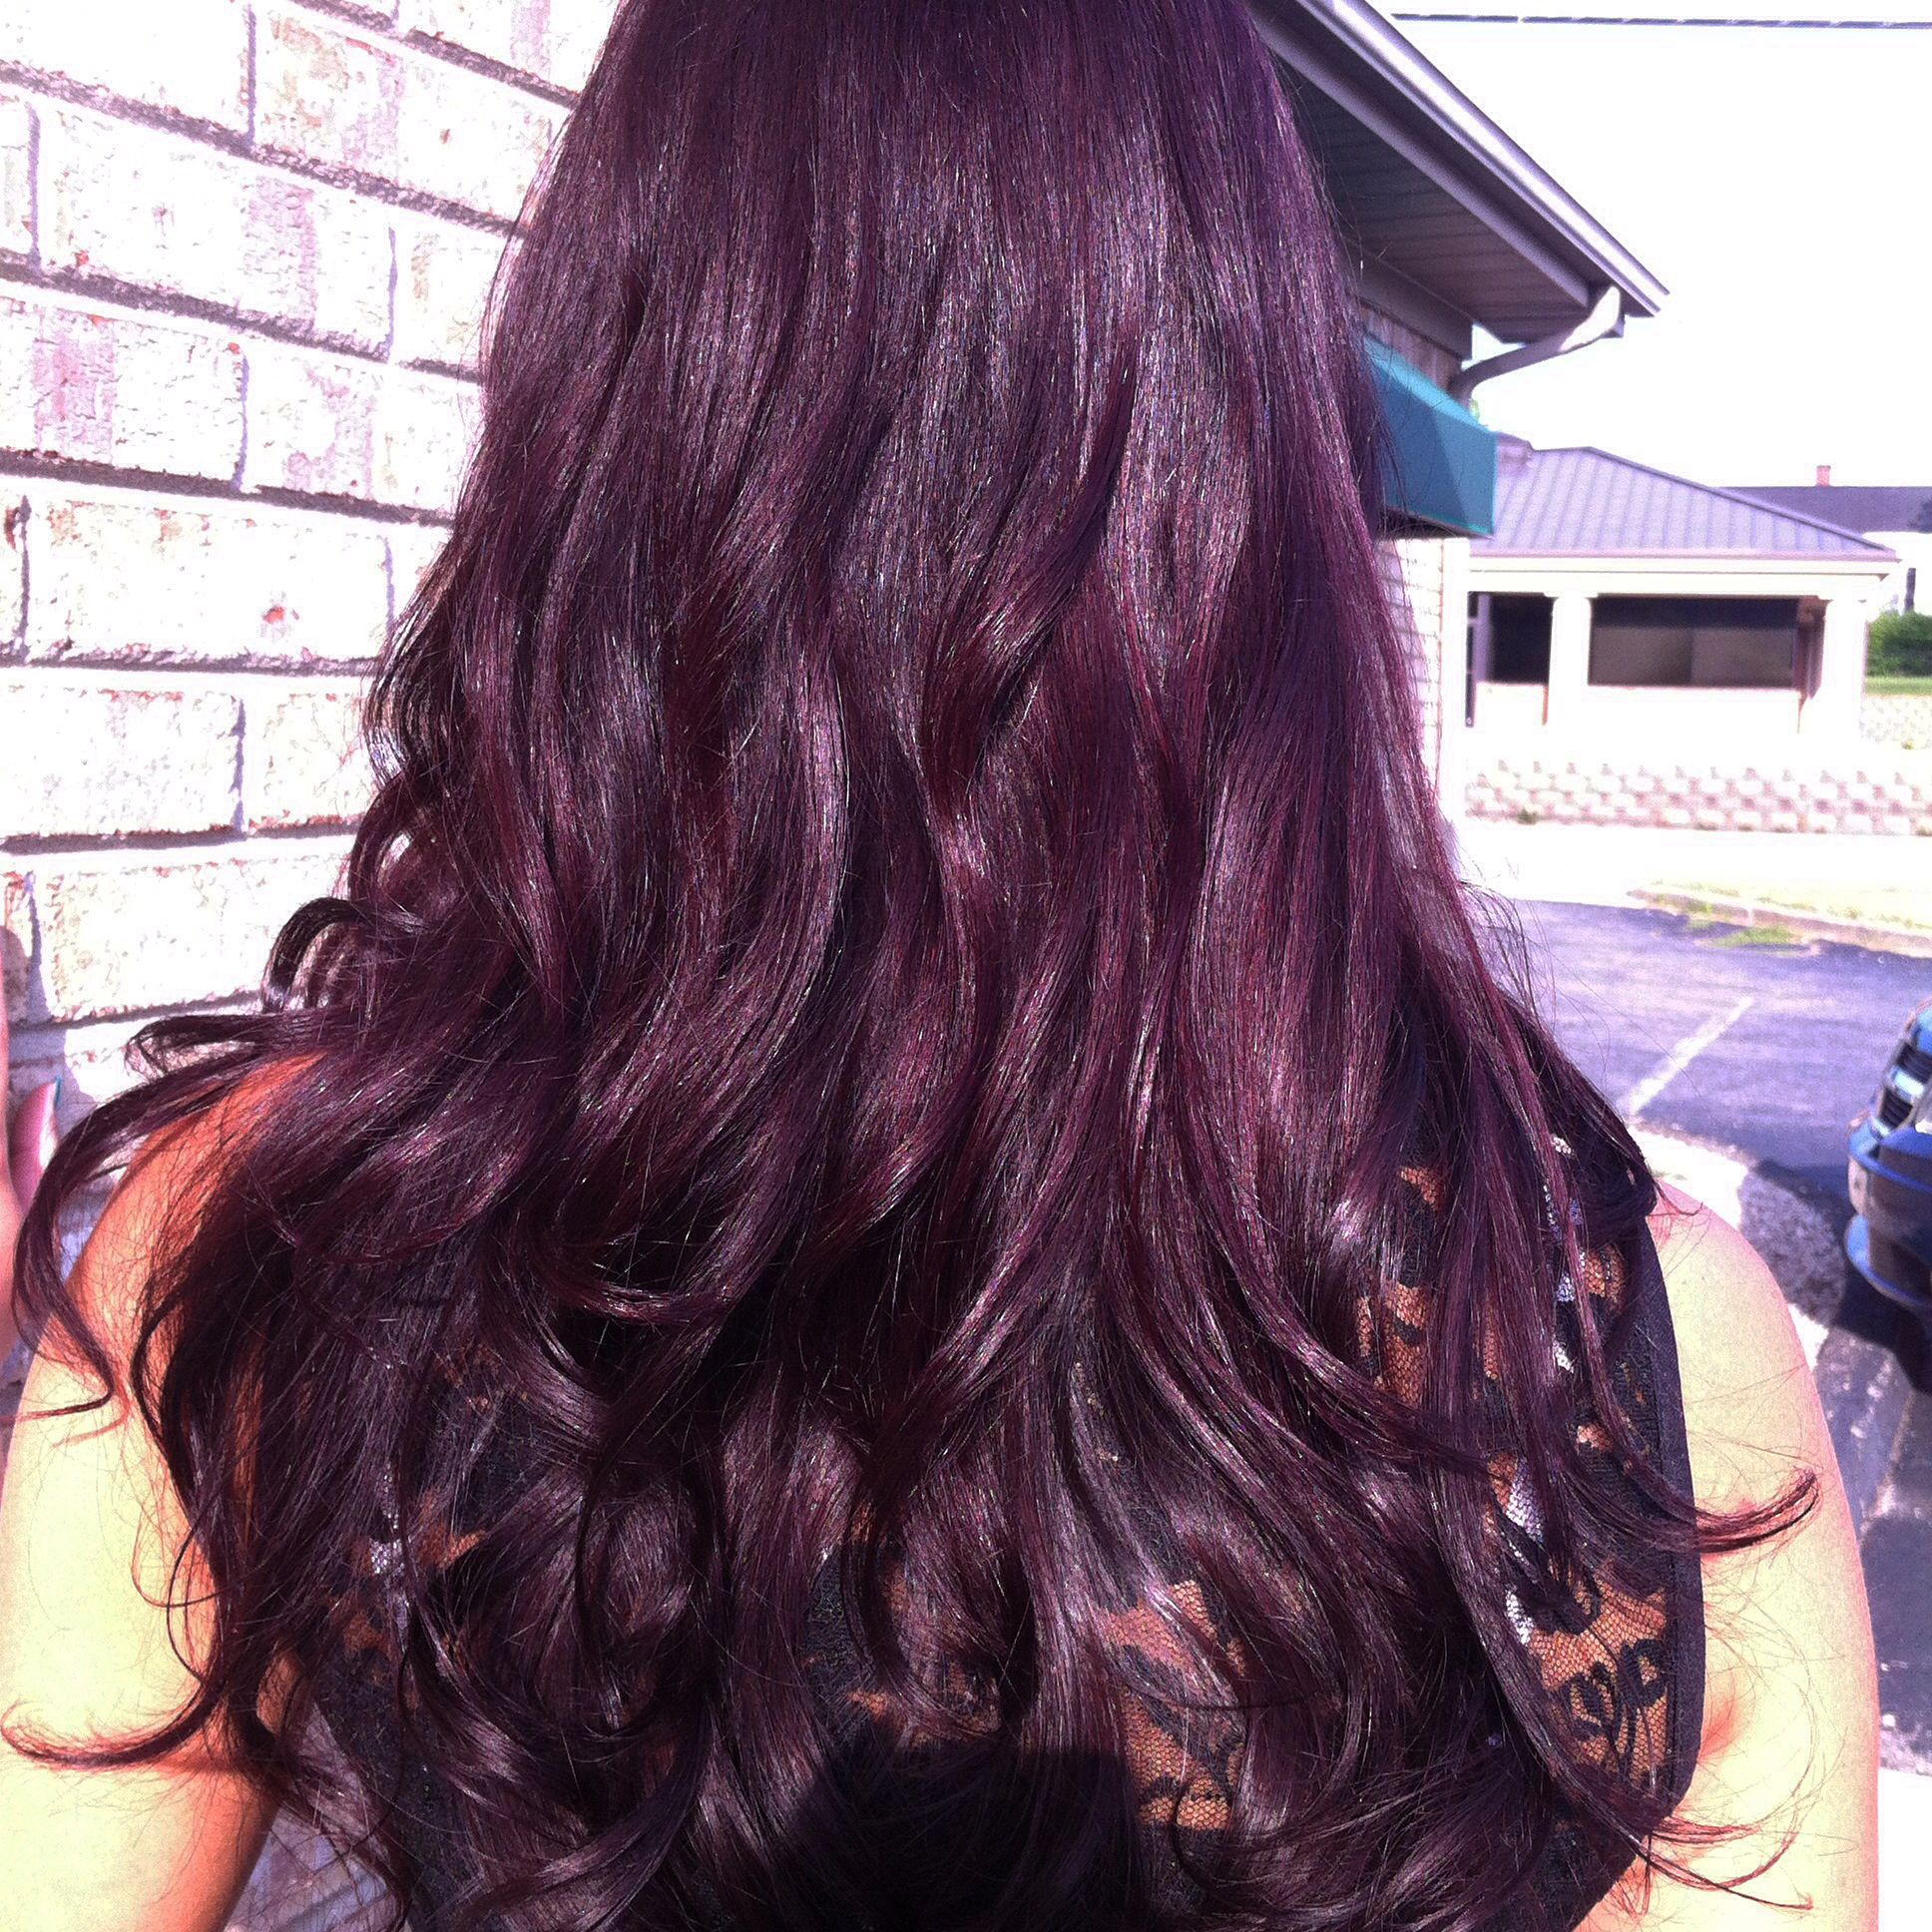 Long Violet Brown Hair Pravana This Is The Color I M Going To Try And Get Tomorrow Violet Brown Hair Purple Brown Hair Violet Hair Colors